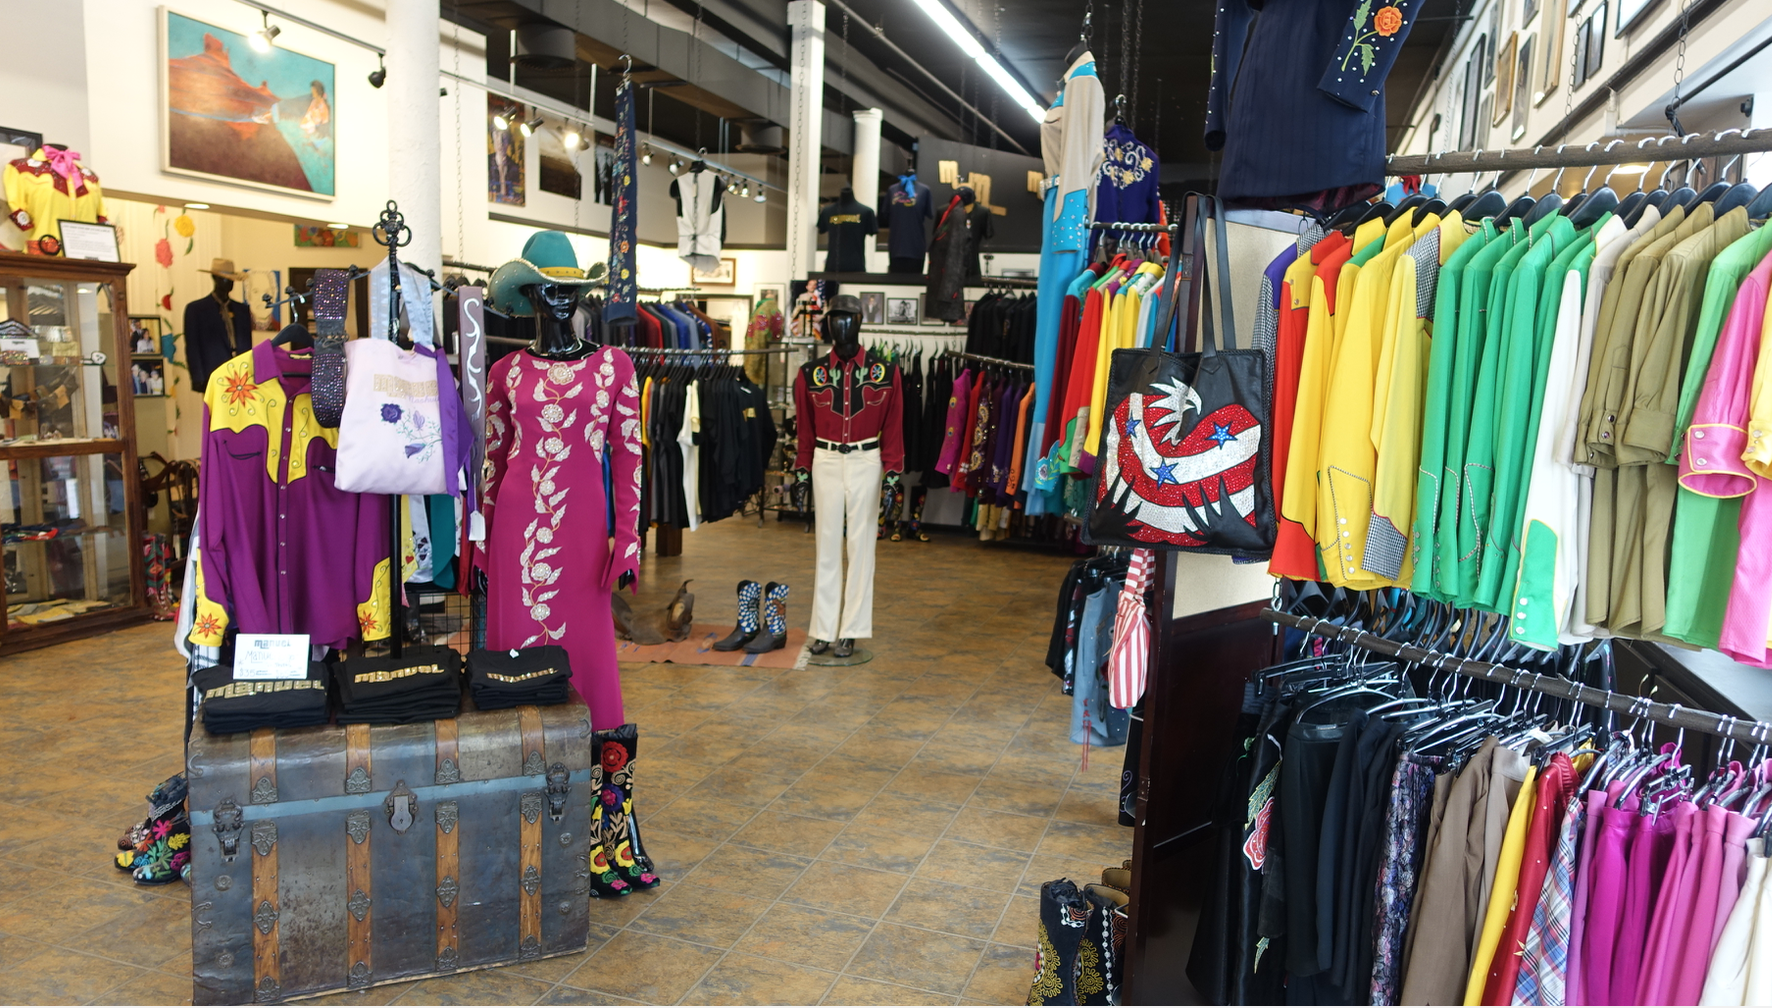 Nashville has dozens of specialty shops like Manuel Couture Clothing & Accessories that focus on fashions for musicians.